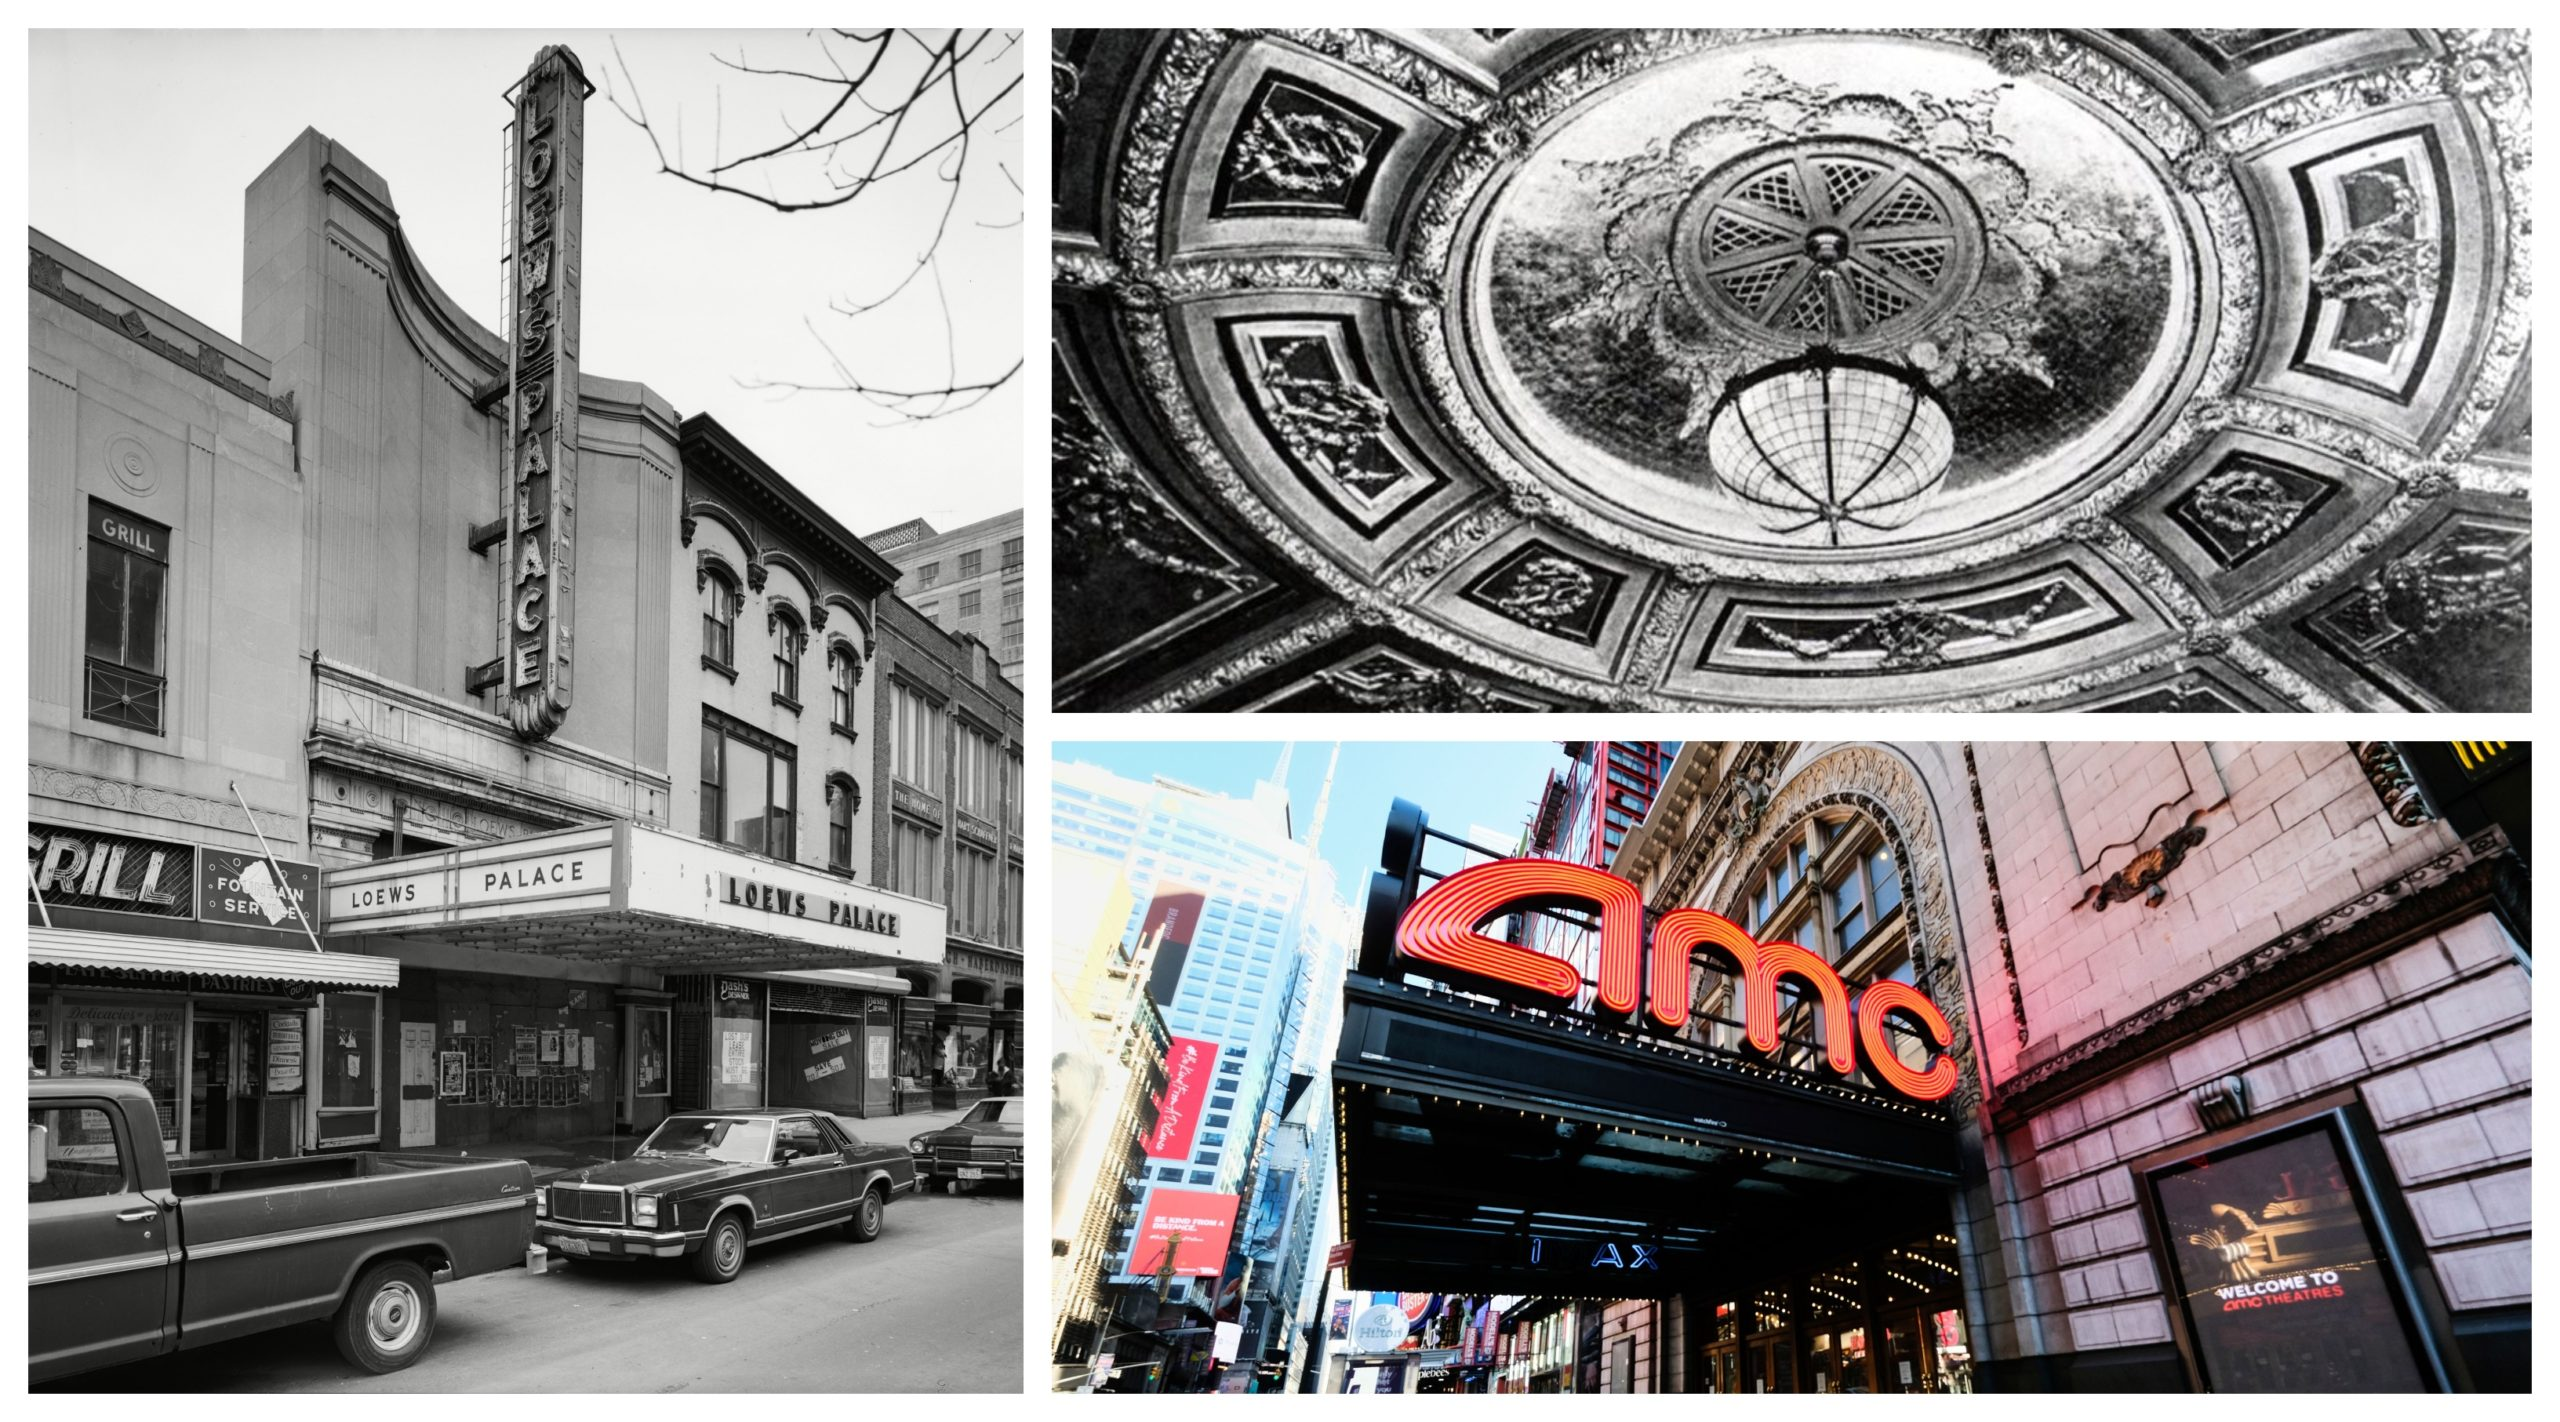 From left, clockwise: Loews Palace Theatre in Washington DC in 1917, the ceiling at the Winter Garden in Toronto, and the Empire Theatre in New York in its current use as the lobby of the AMC Empire 25 multiplex movie theatre.